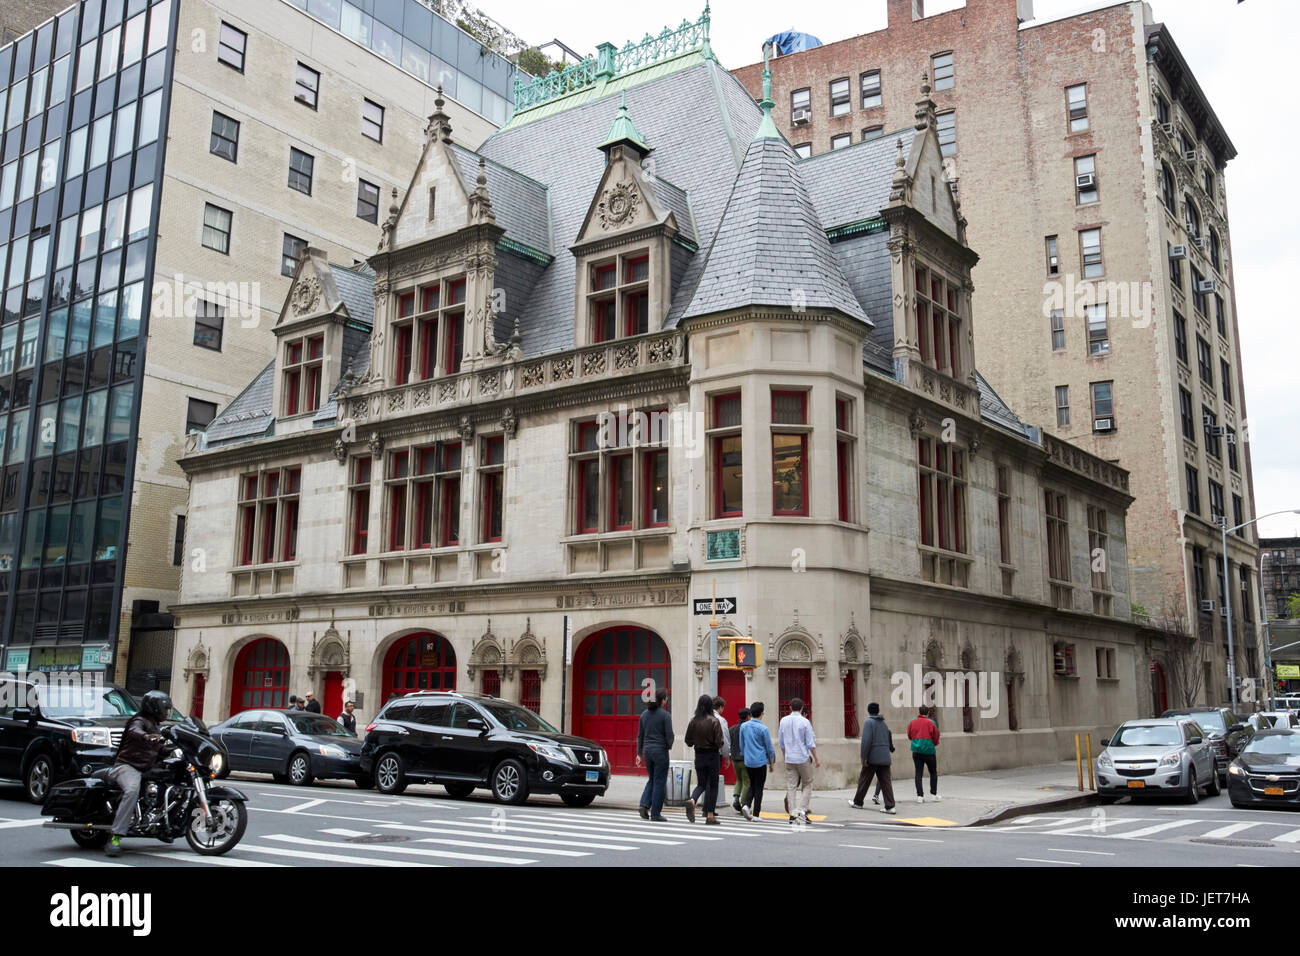 downtown community television center former engine 31 firehouse New York City USA - Stock Image